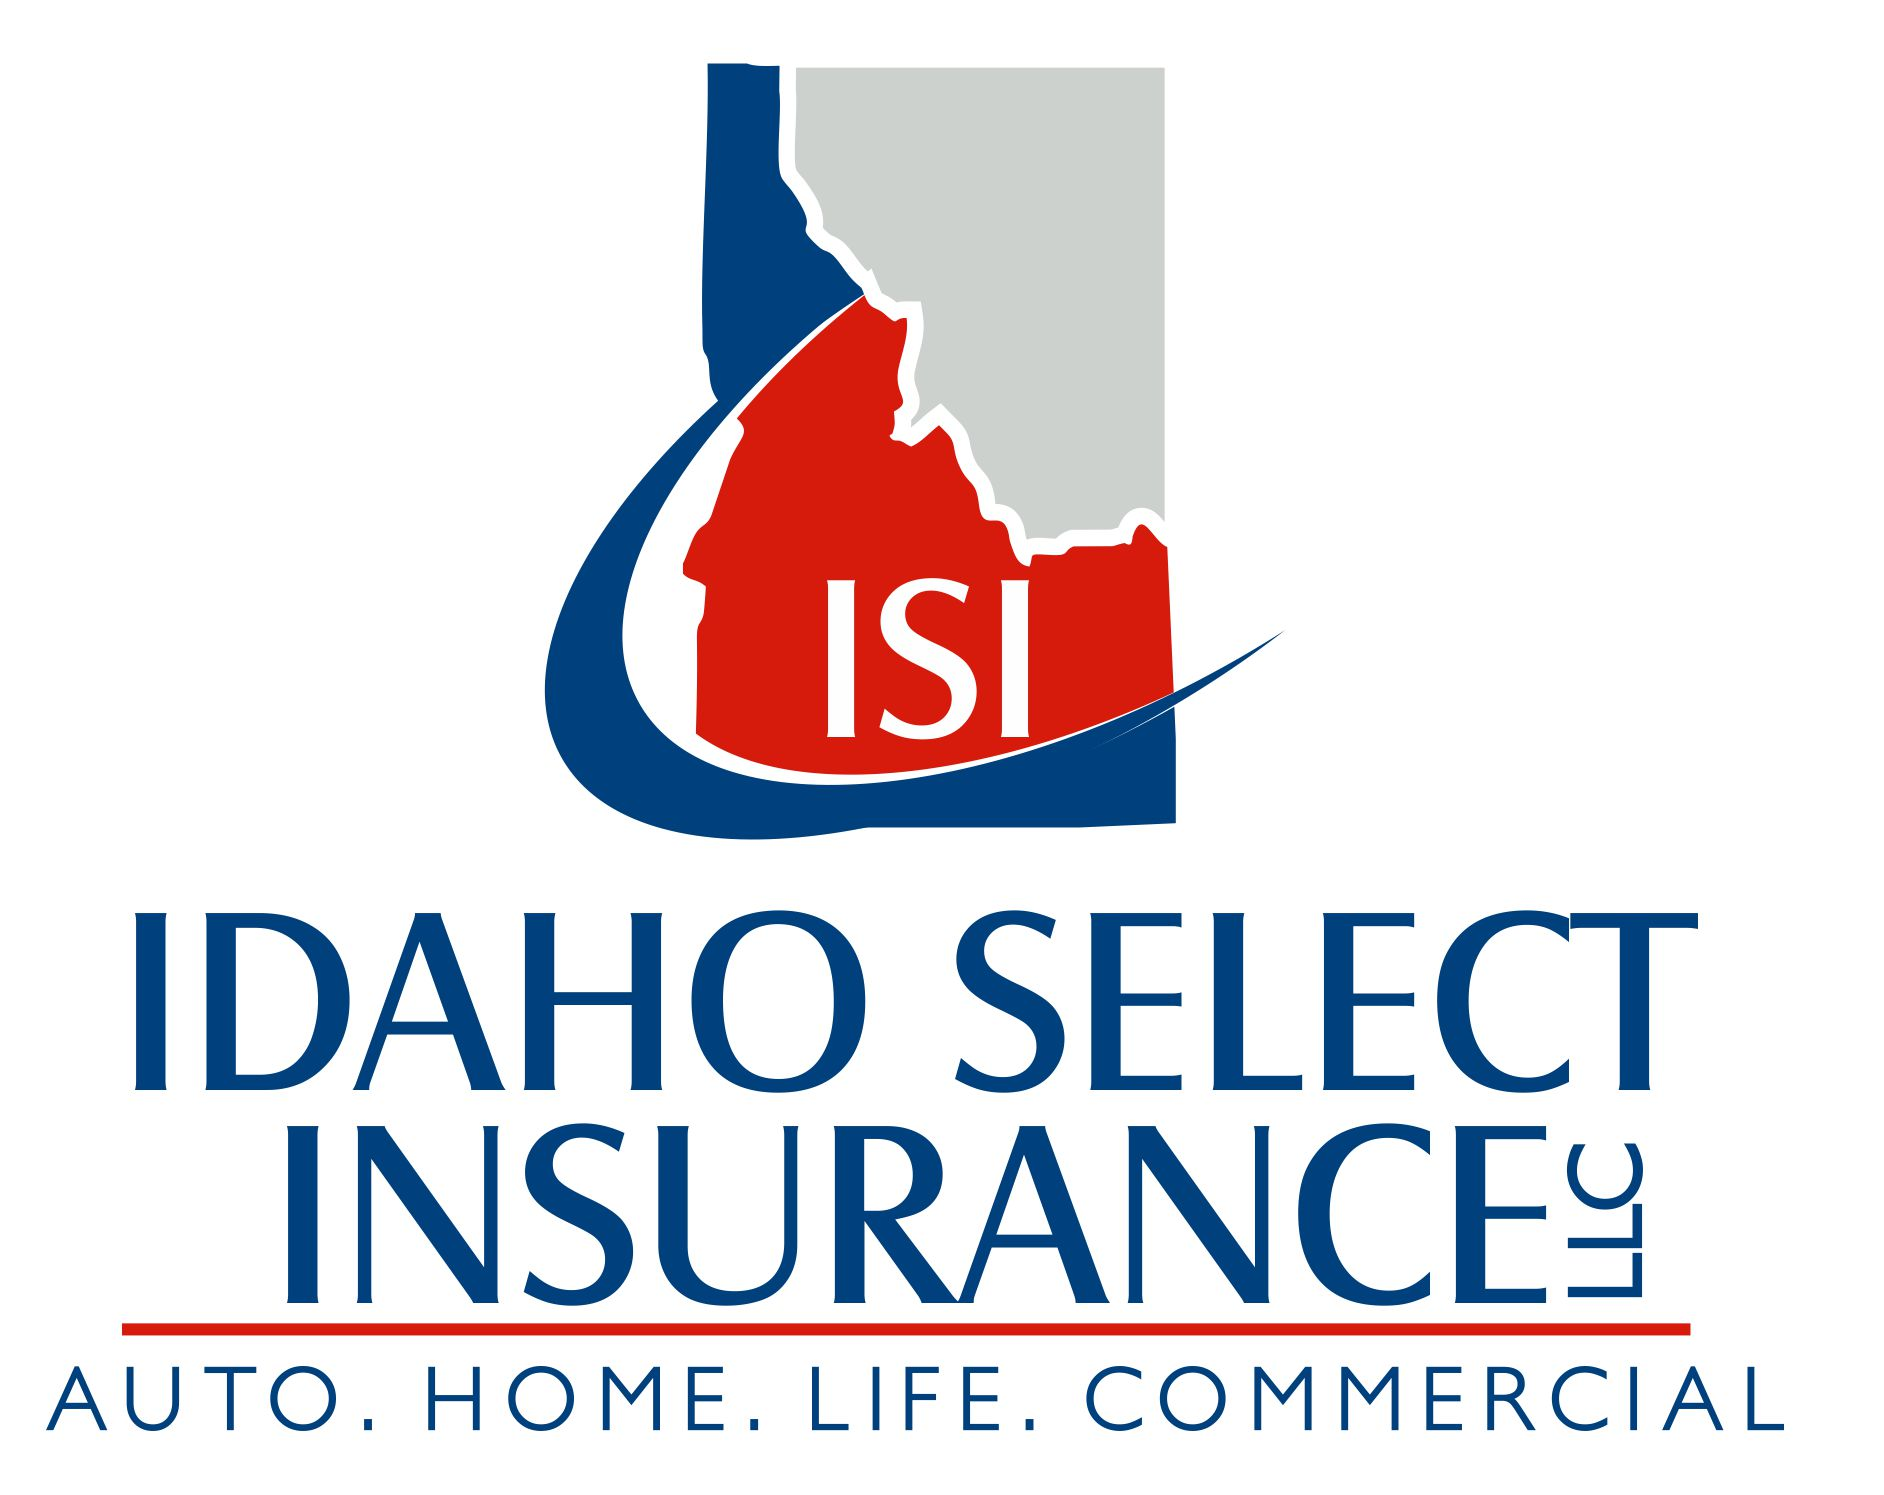 Select A Quote Life Insurance Meridian Id Life Insurance Agents  Idaho Select Insurance